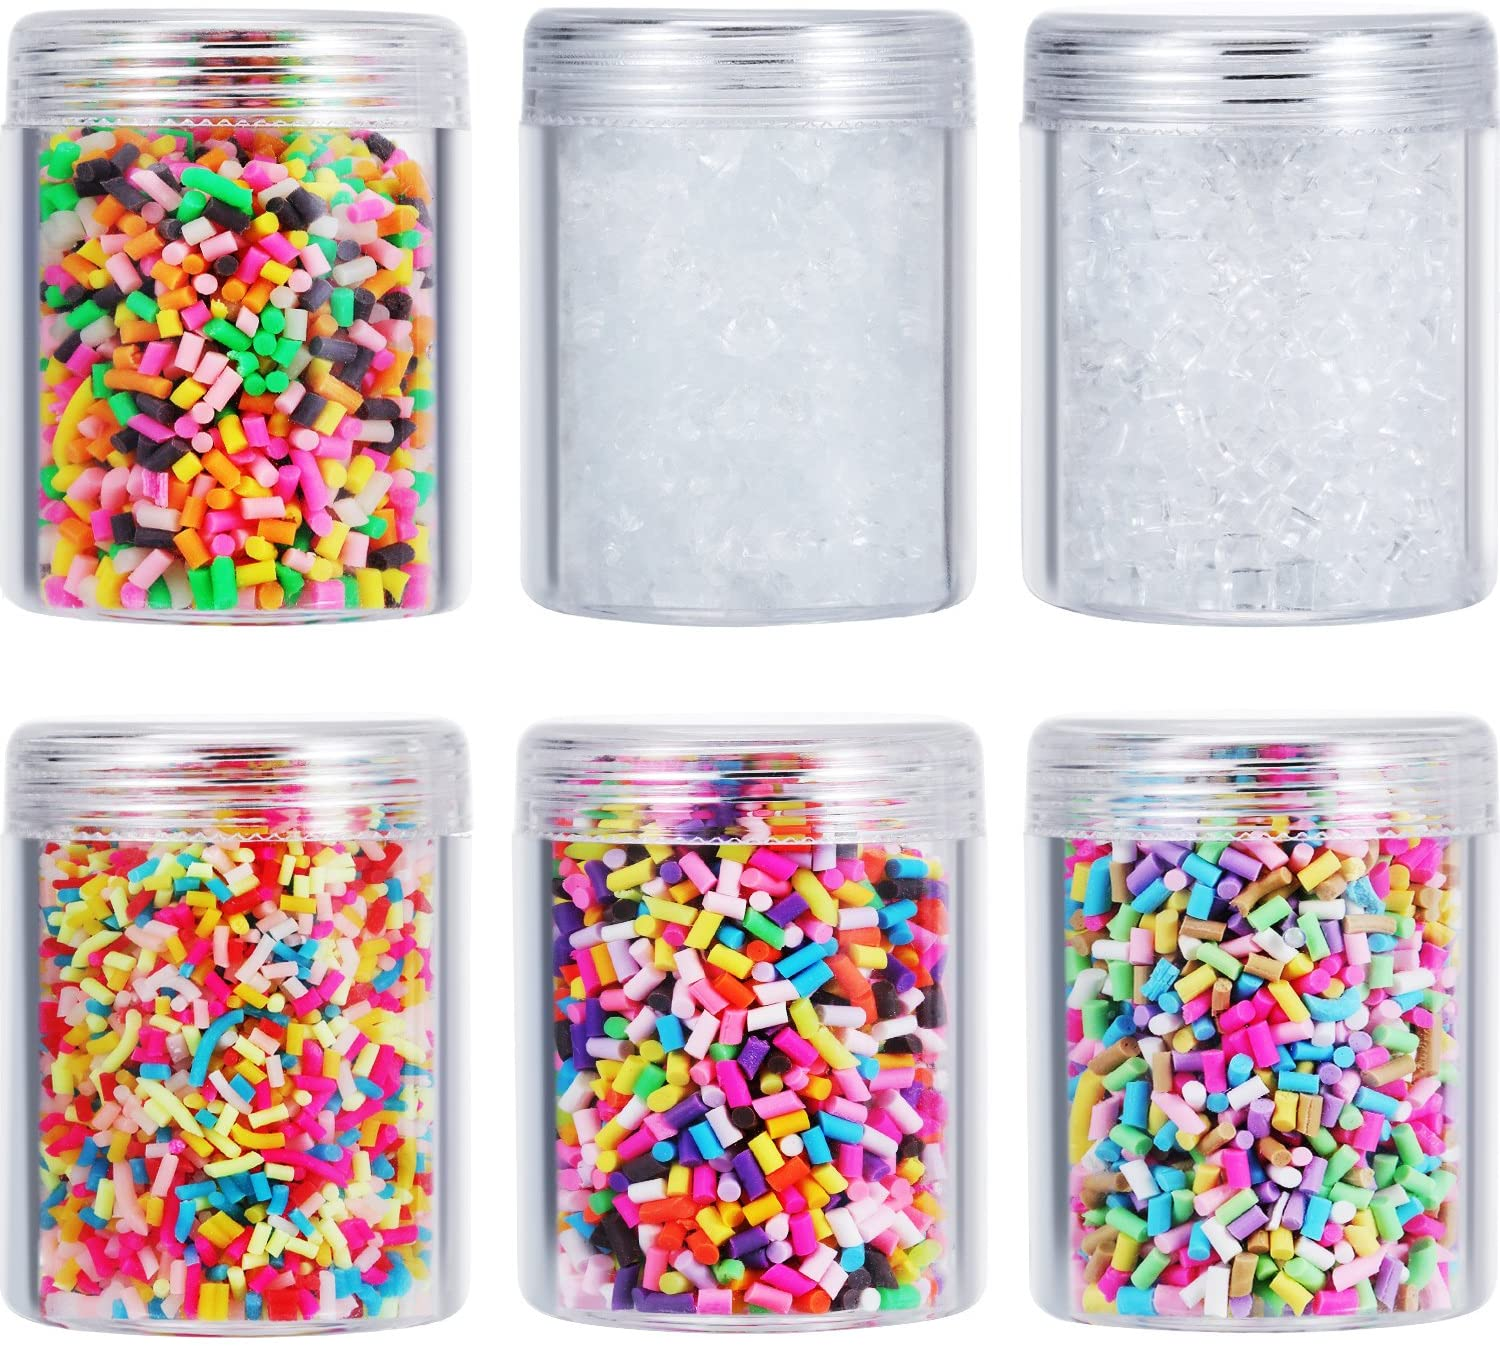 Zhanmai 6 Bottles of Colorful Fake Candy Sweets Sugar Chocolate Ice Sprinkles Decorations for Fake Cake Dessert Simulation Food Slime Kit DIY Crafts with Storage Bottles (Multicolor and White)